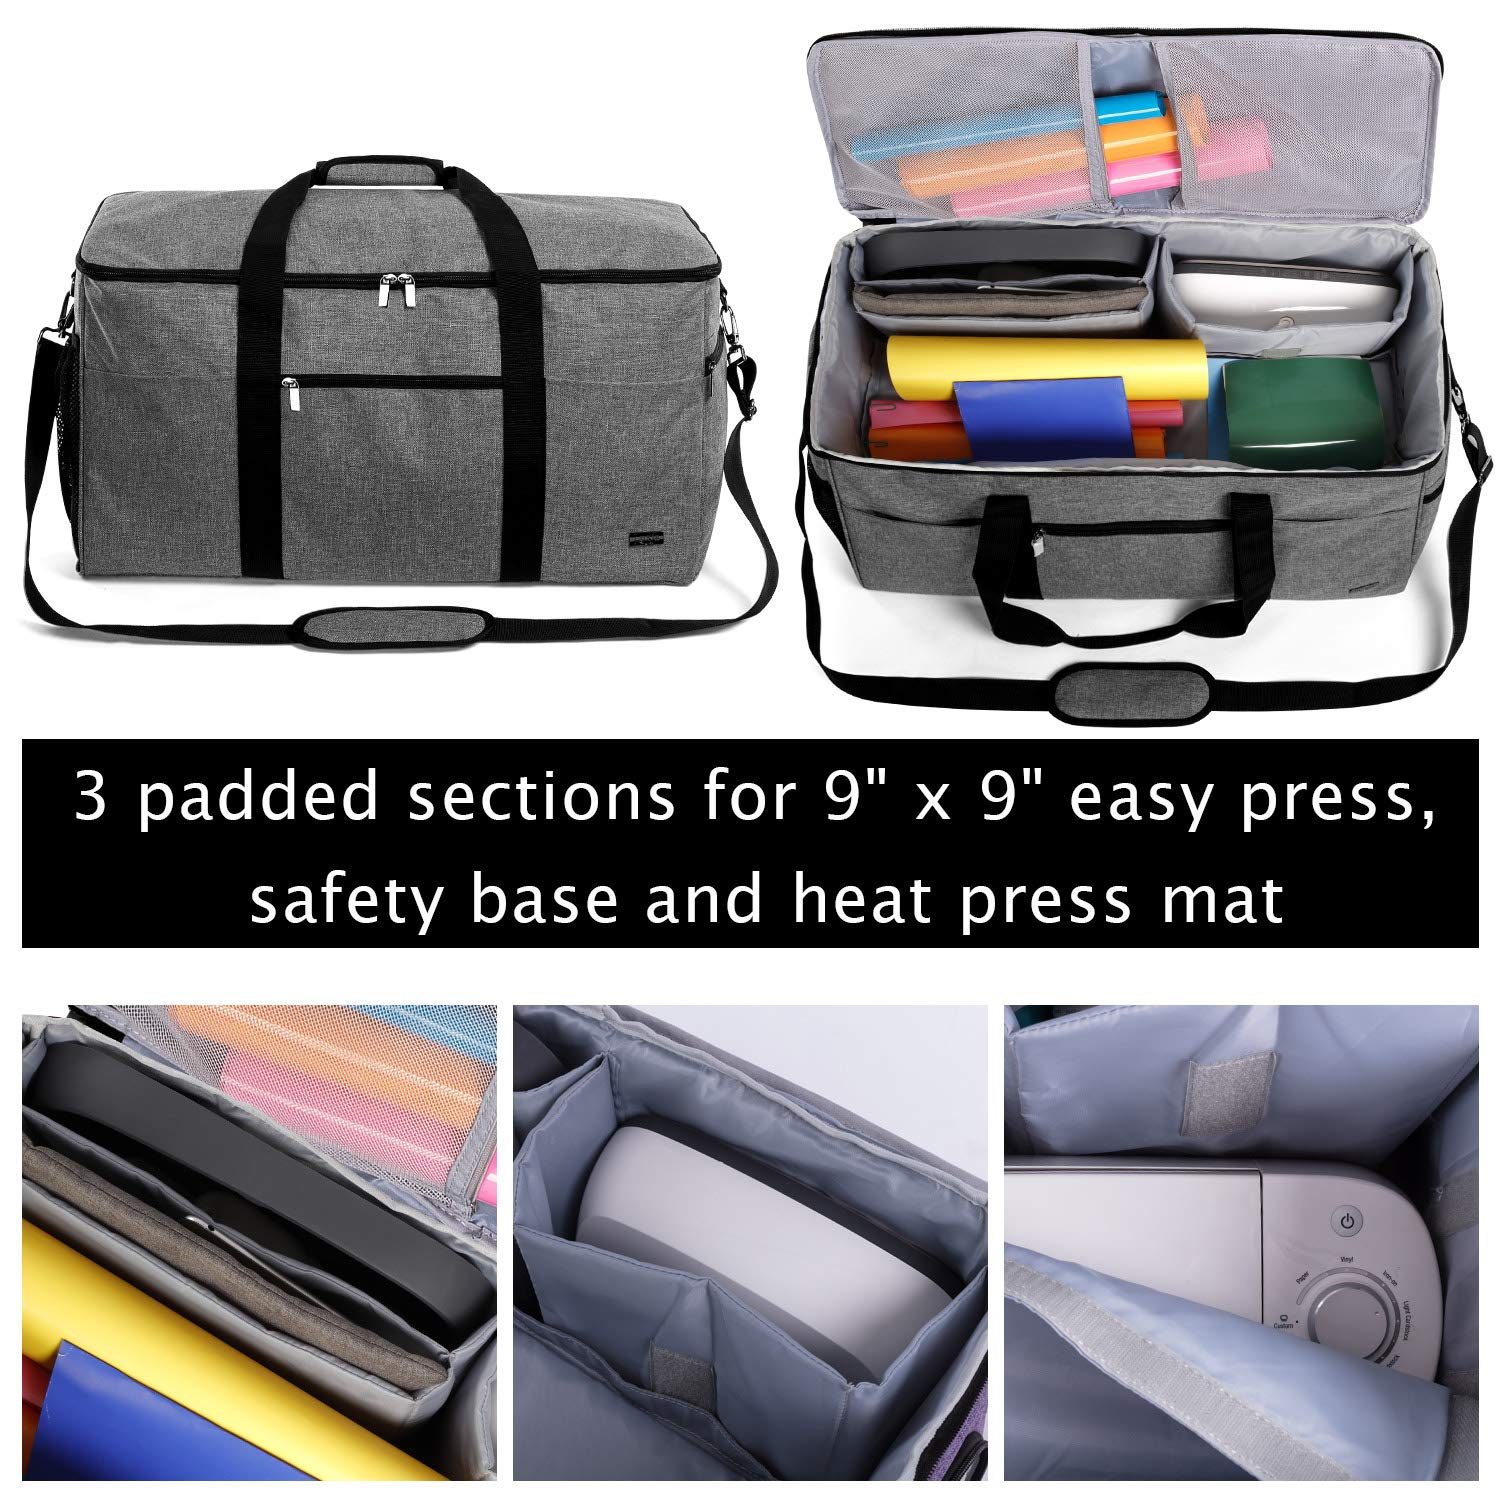 Luxja All-in One Bag for Cricut Die-Cut Machine and Cricut Easy Press (9 x 9 inches), Carrying Case for Cricut Machine and Supplies, Compatible with Cricut Explore Air (Air2) and Maker, Gray